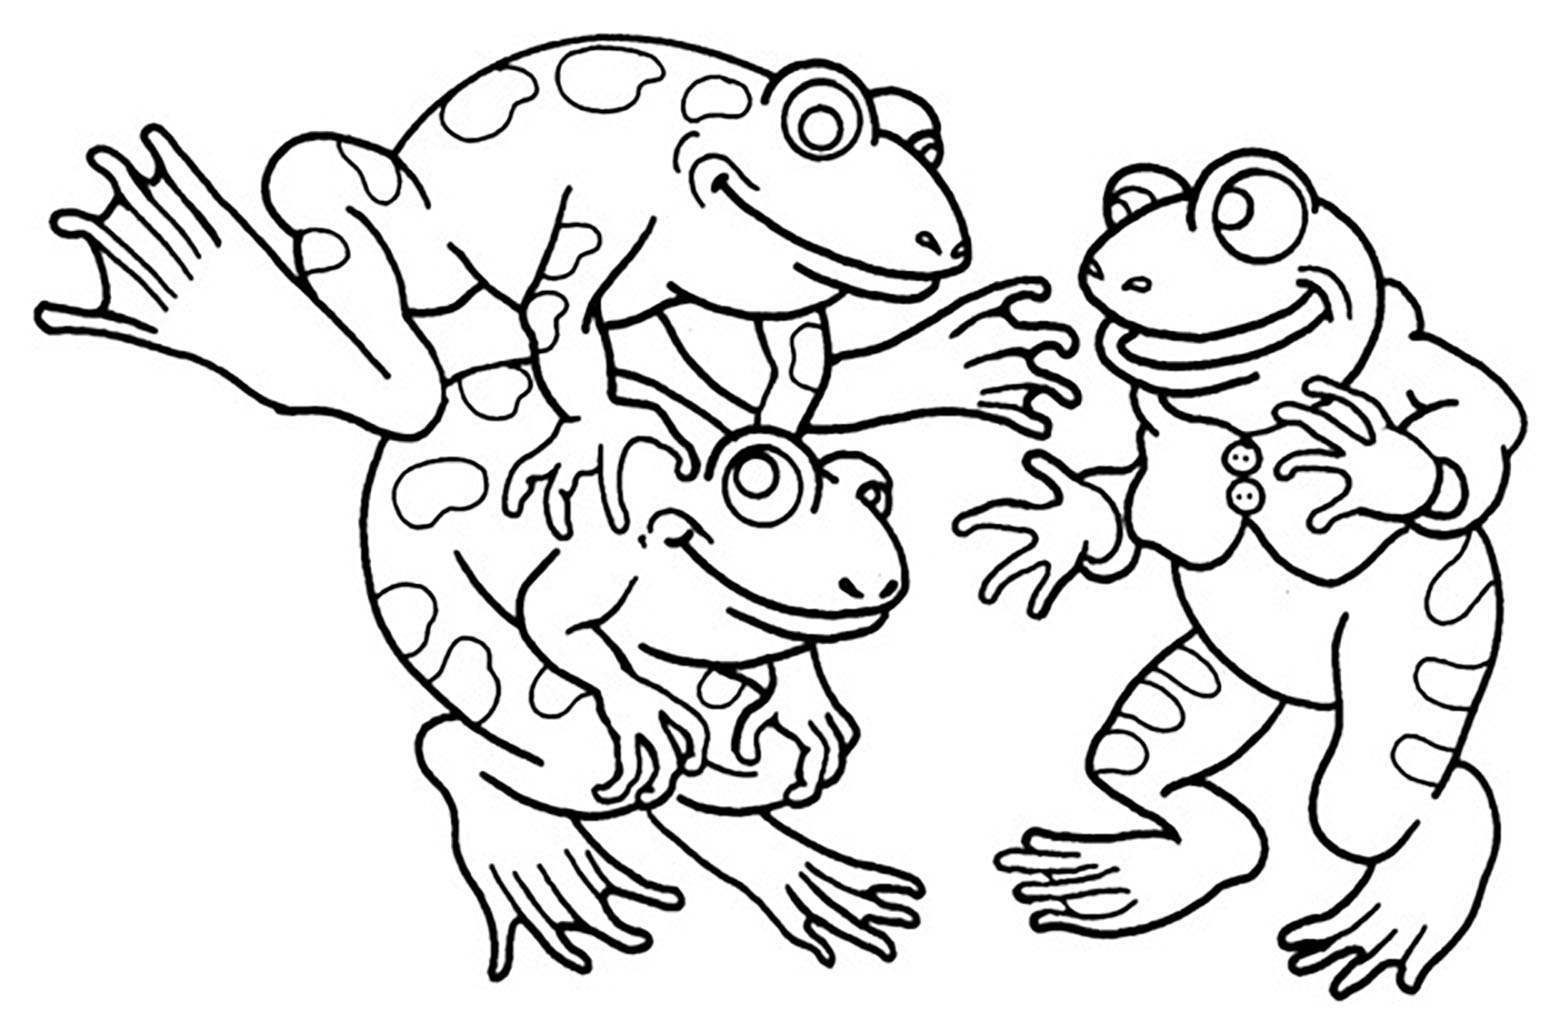 Frogs coloring page to print and color